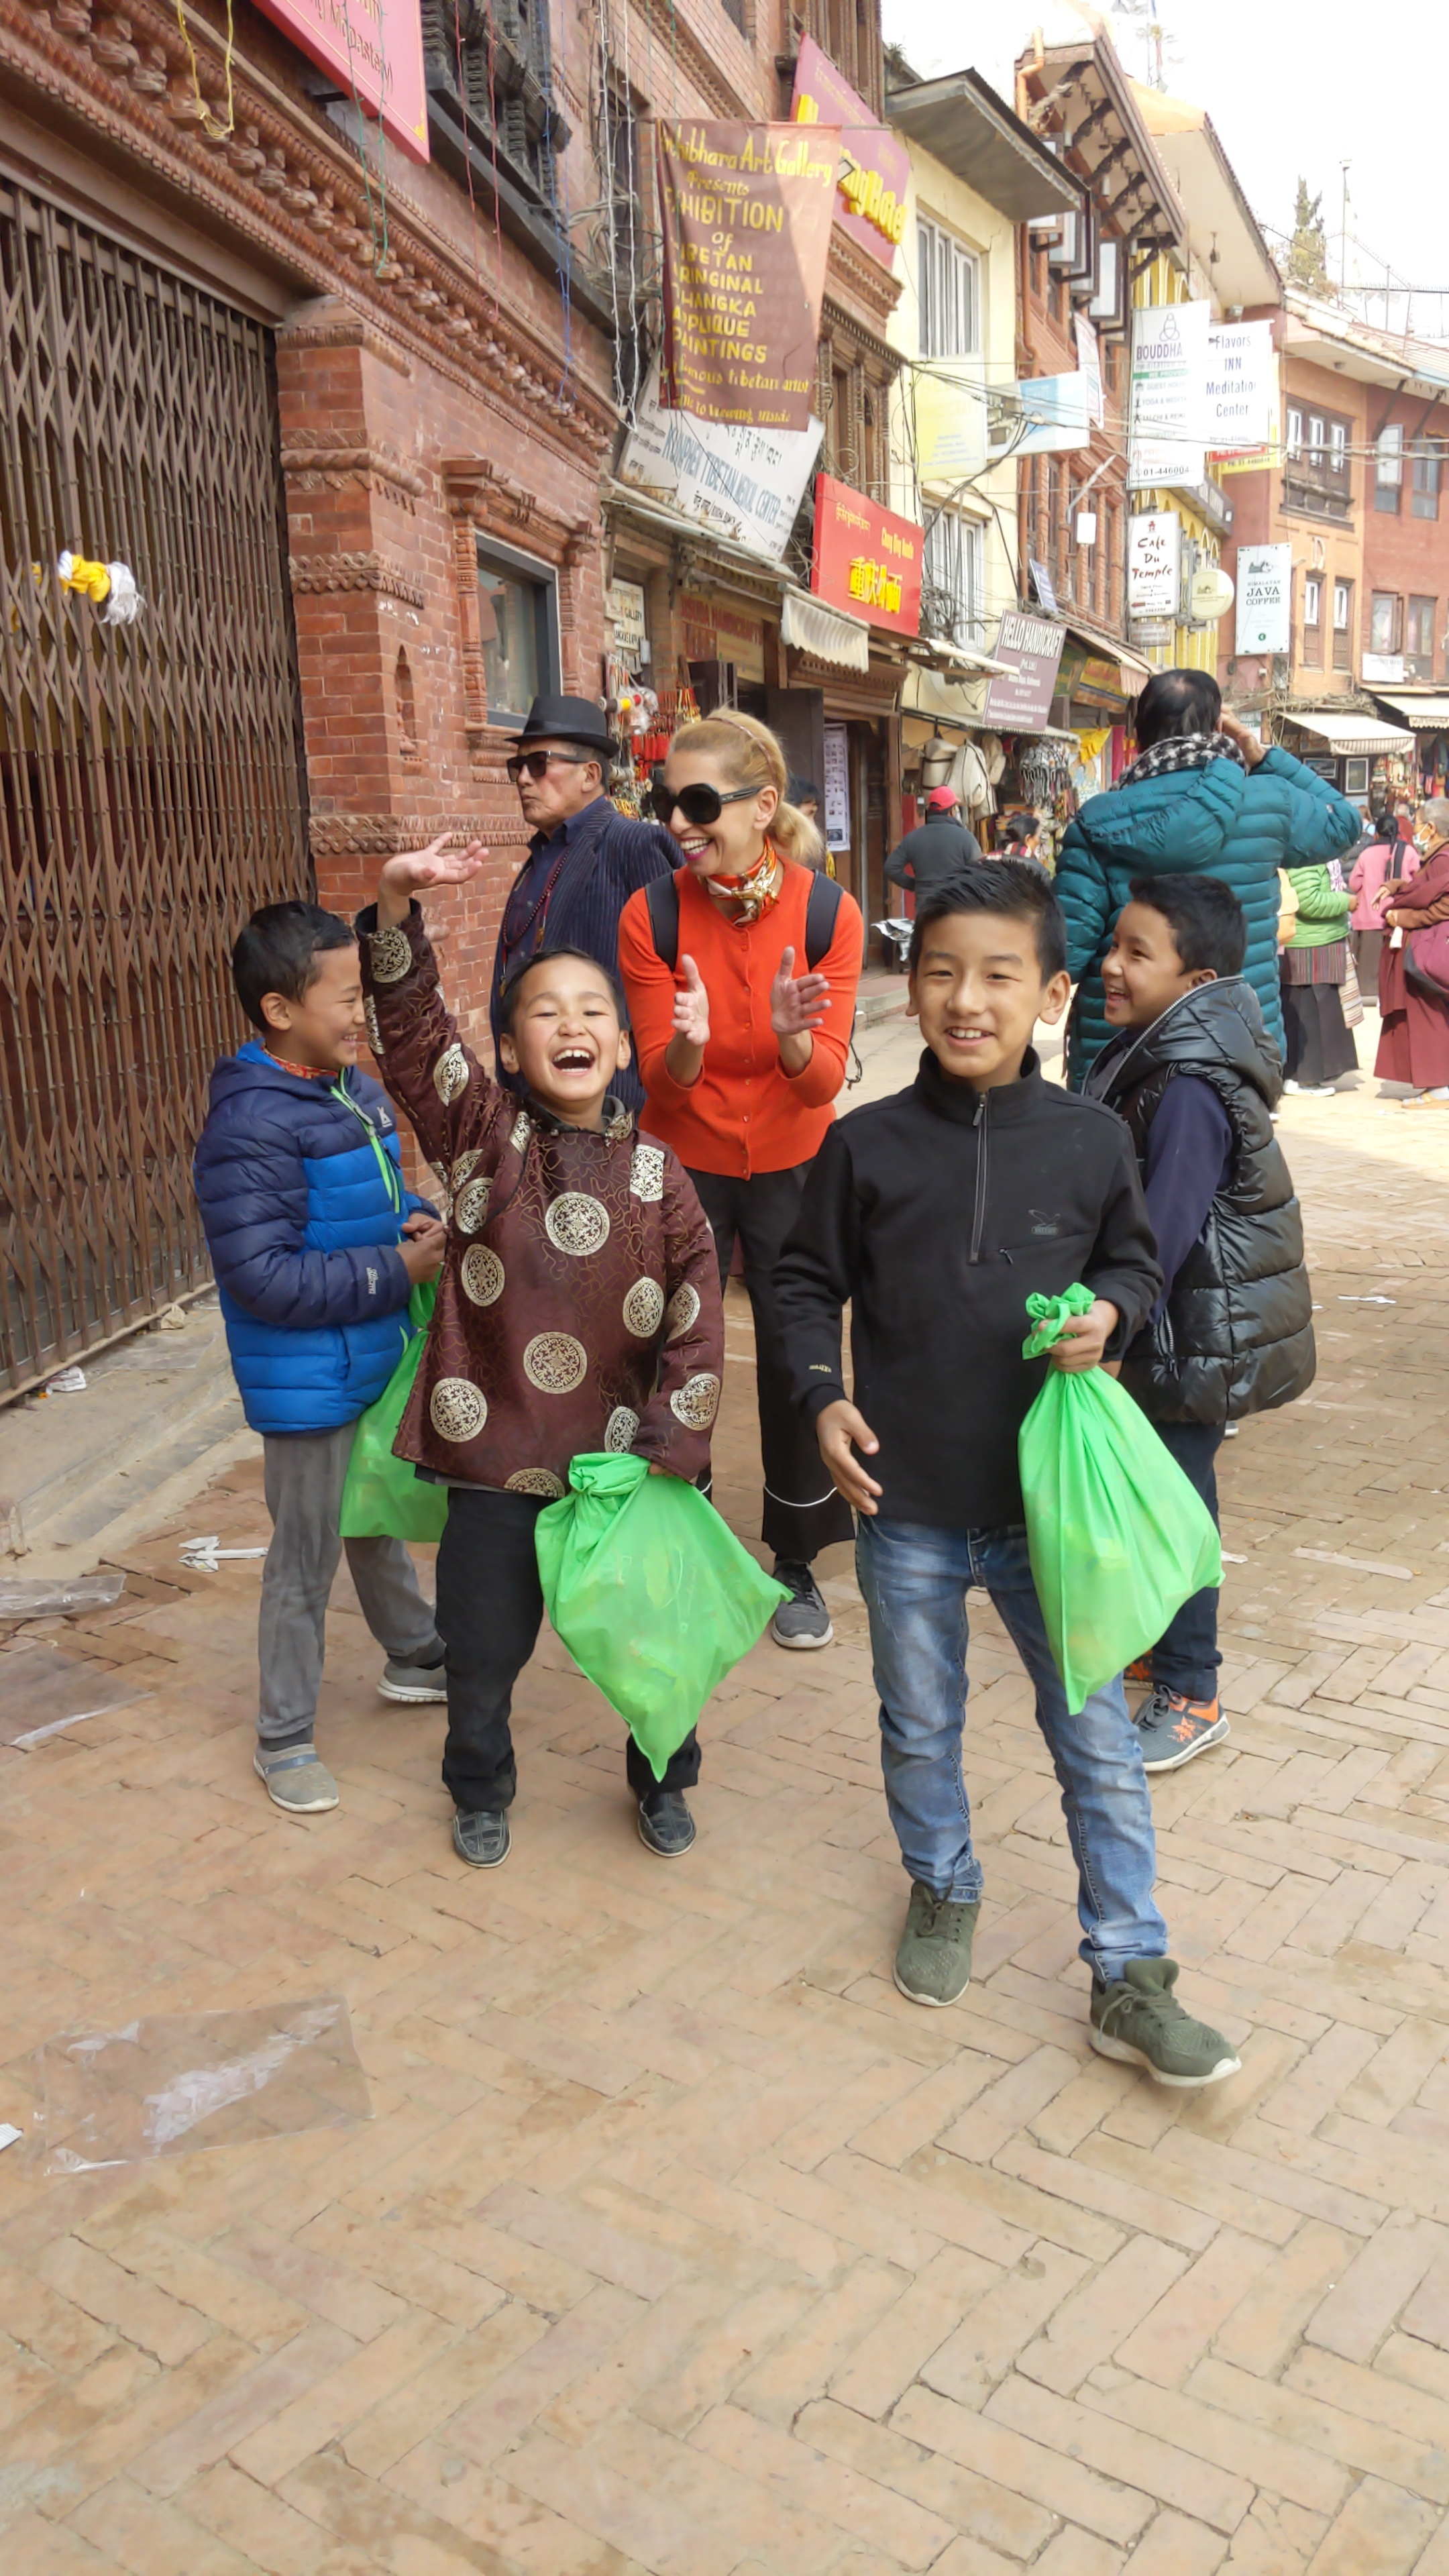 Some more young friends who taught me a few words in Nepalese